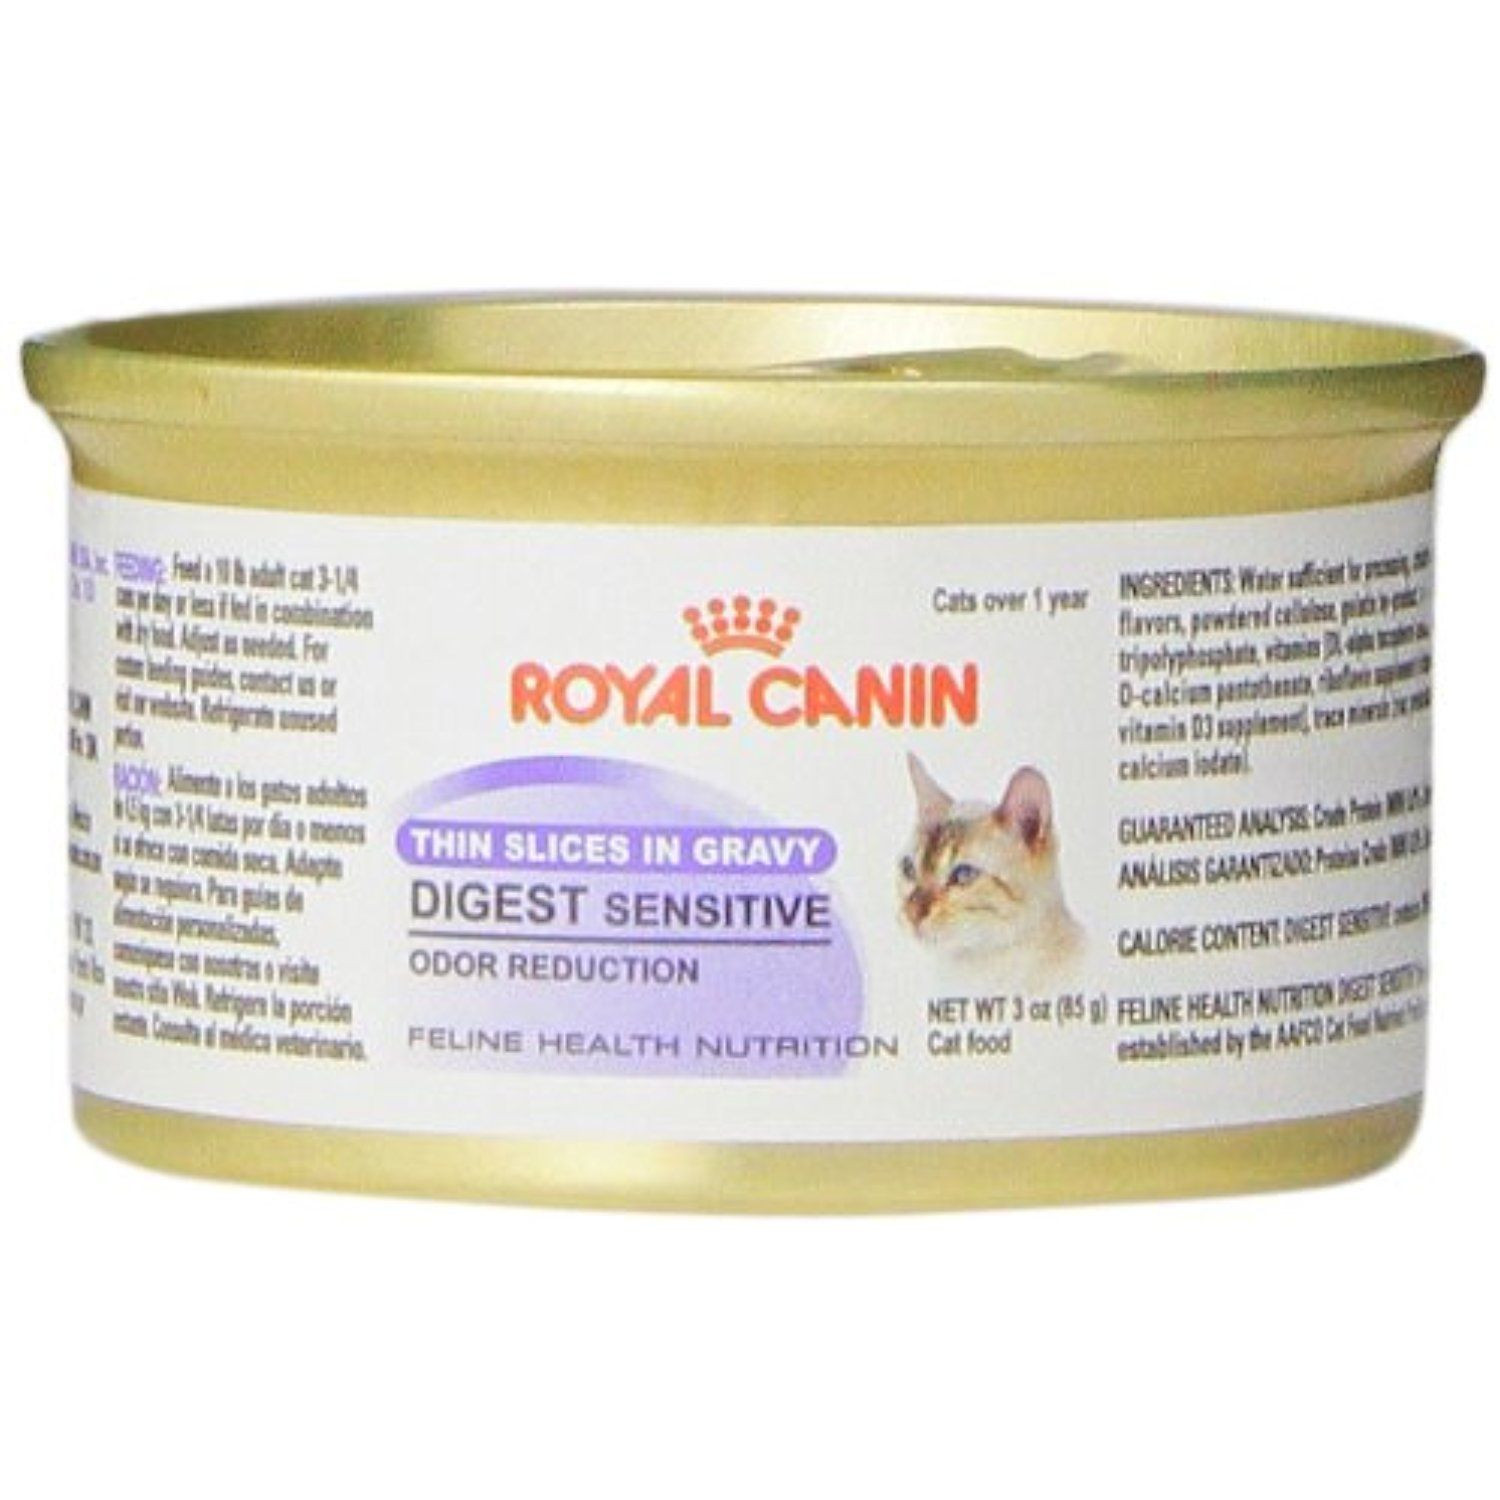 Royal Canin 24 Can Feline Health Nutrition Digest Sensitive Canned Cat Food 3 Ounce Per Can Thin Slices In Gravy Canned Cat Food Feline Health Wet Cat Food